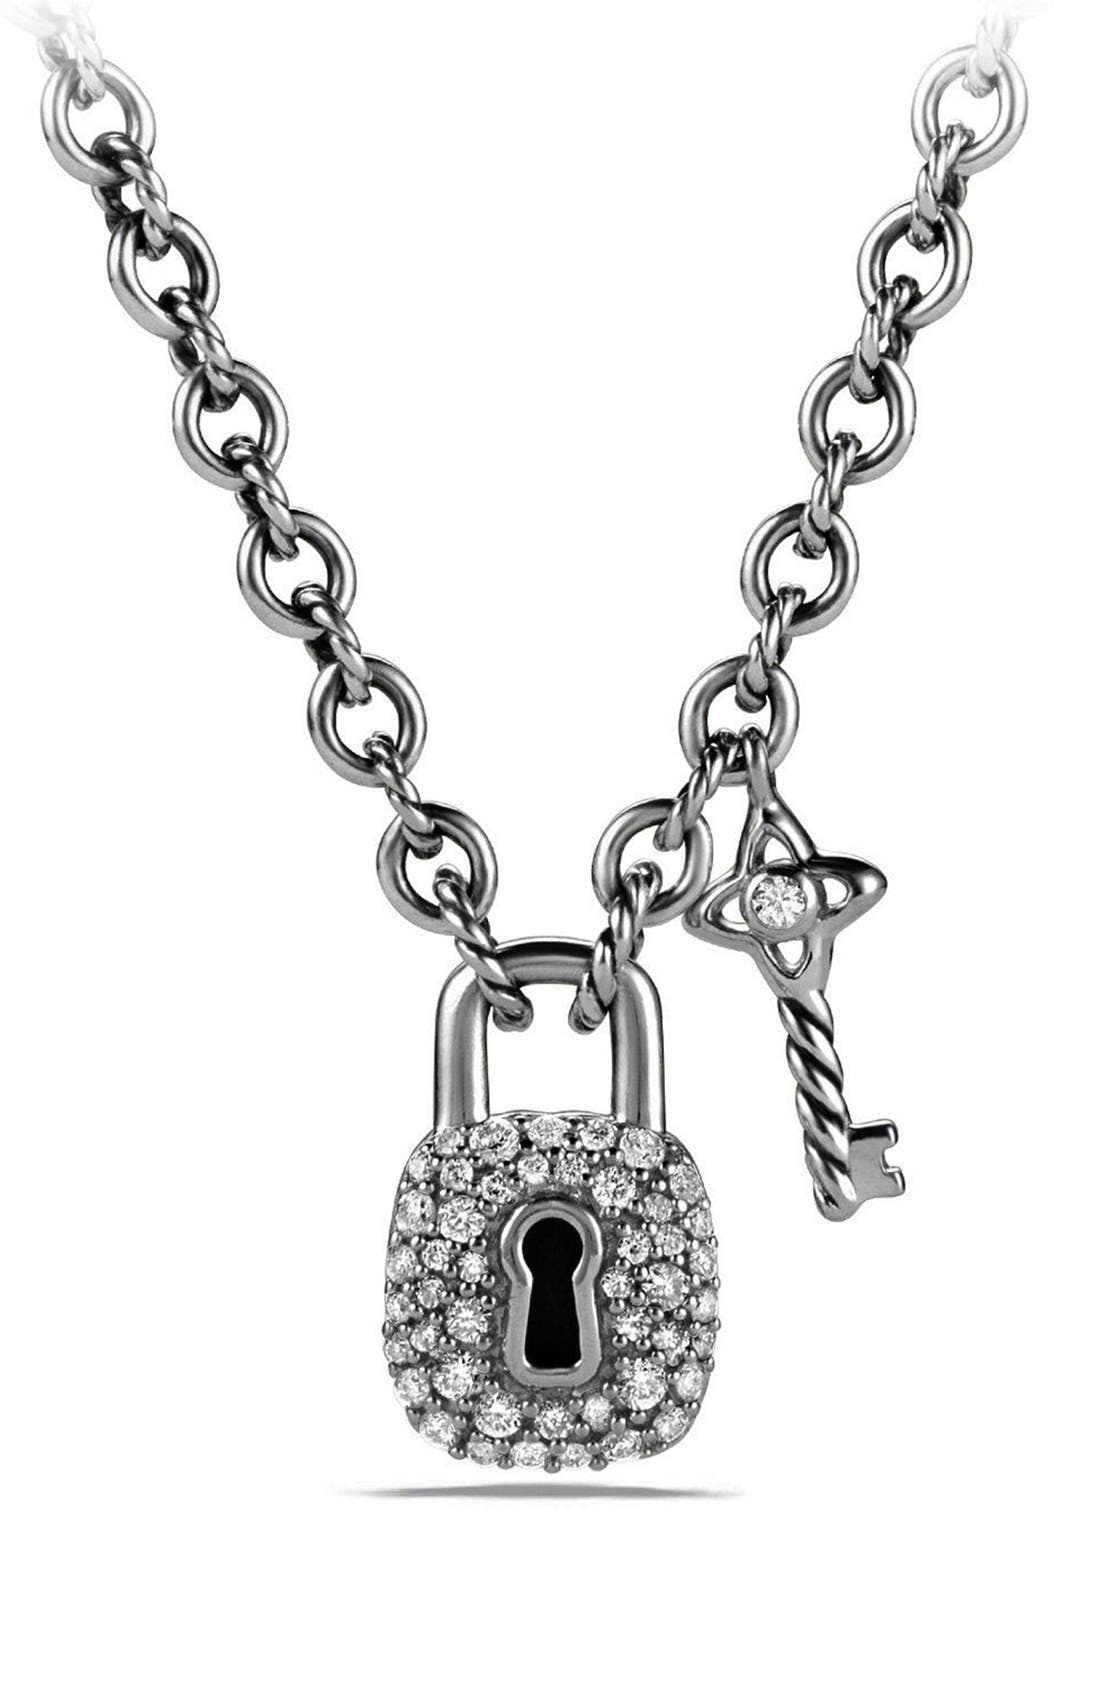 DAVID YURMAN Cable Collectibles<sup>®</sup> Lock and Key Charm Necklace with Diamonds